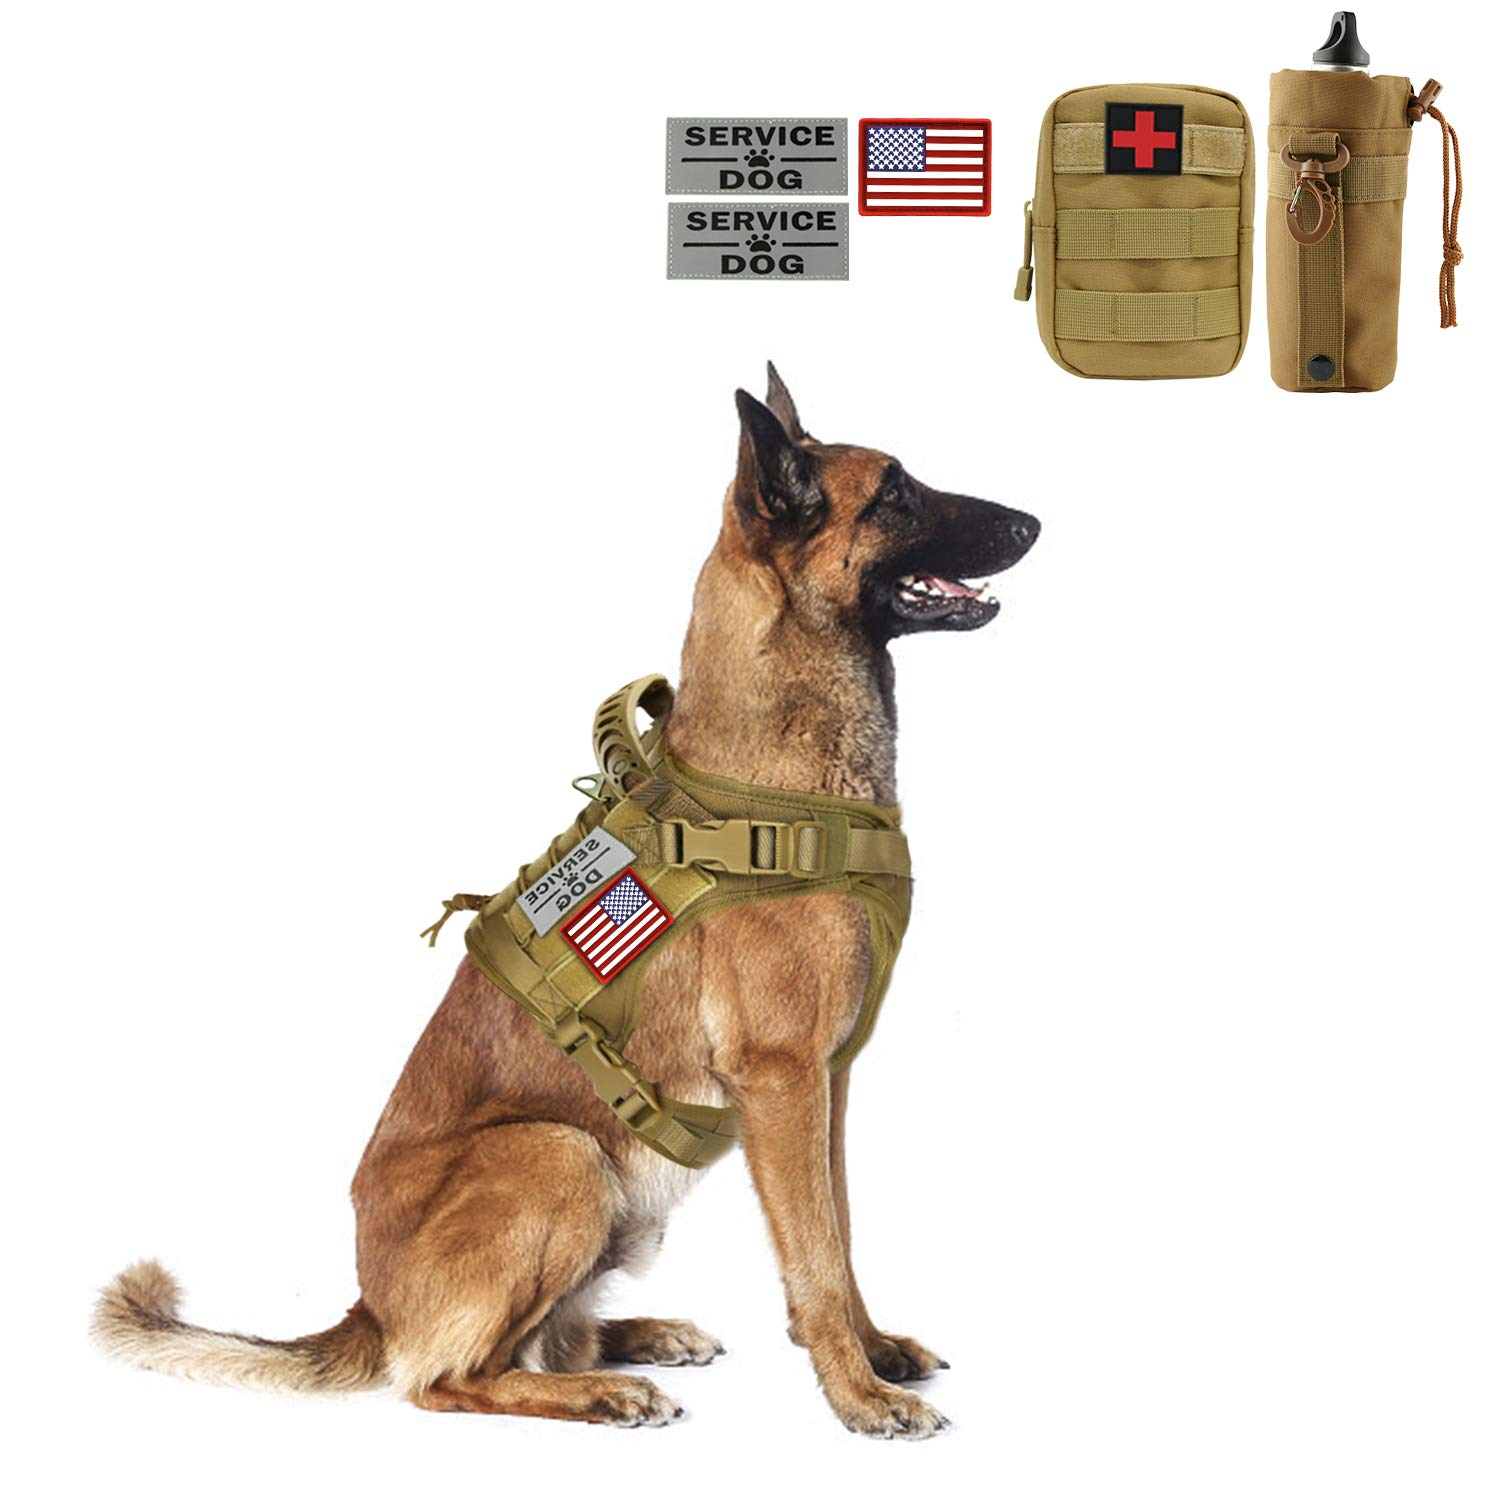 Hanshengday Tactical Dog Vest-Training Outdoor Breathable Harness-Military Water-Resistant Dog Backpack-Pet Tactical -Vest Detachable Pouches-D Ring for Dog Leash (XL, 02Khaki)